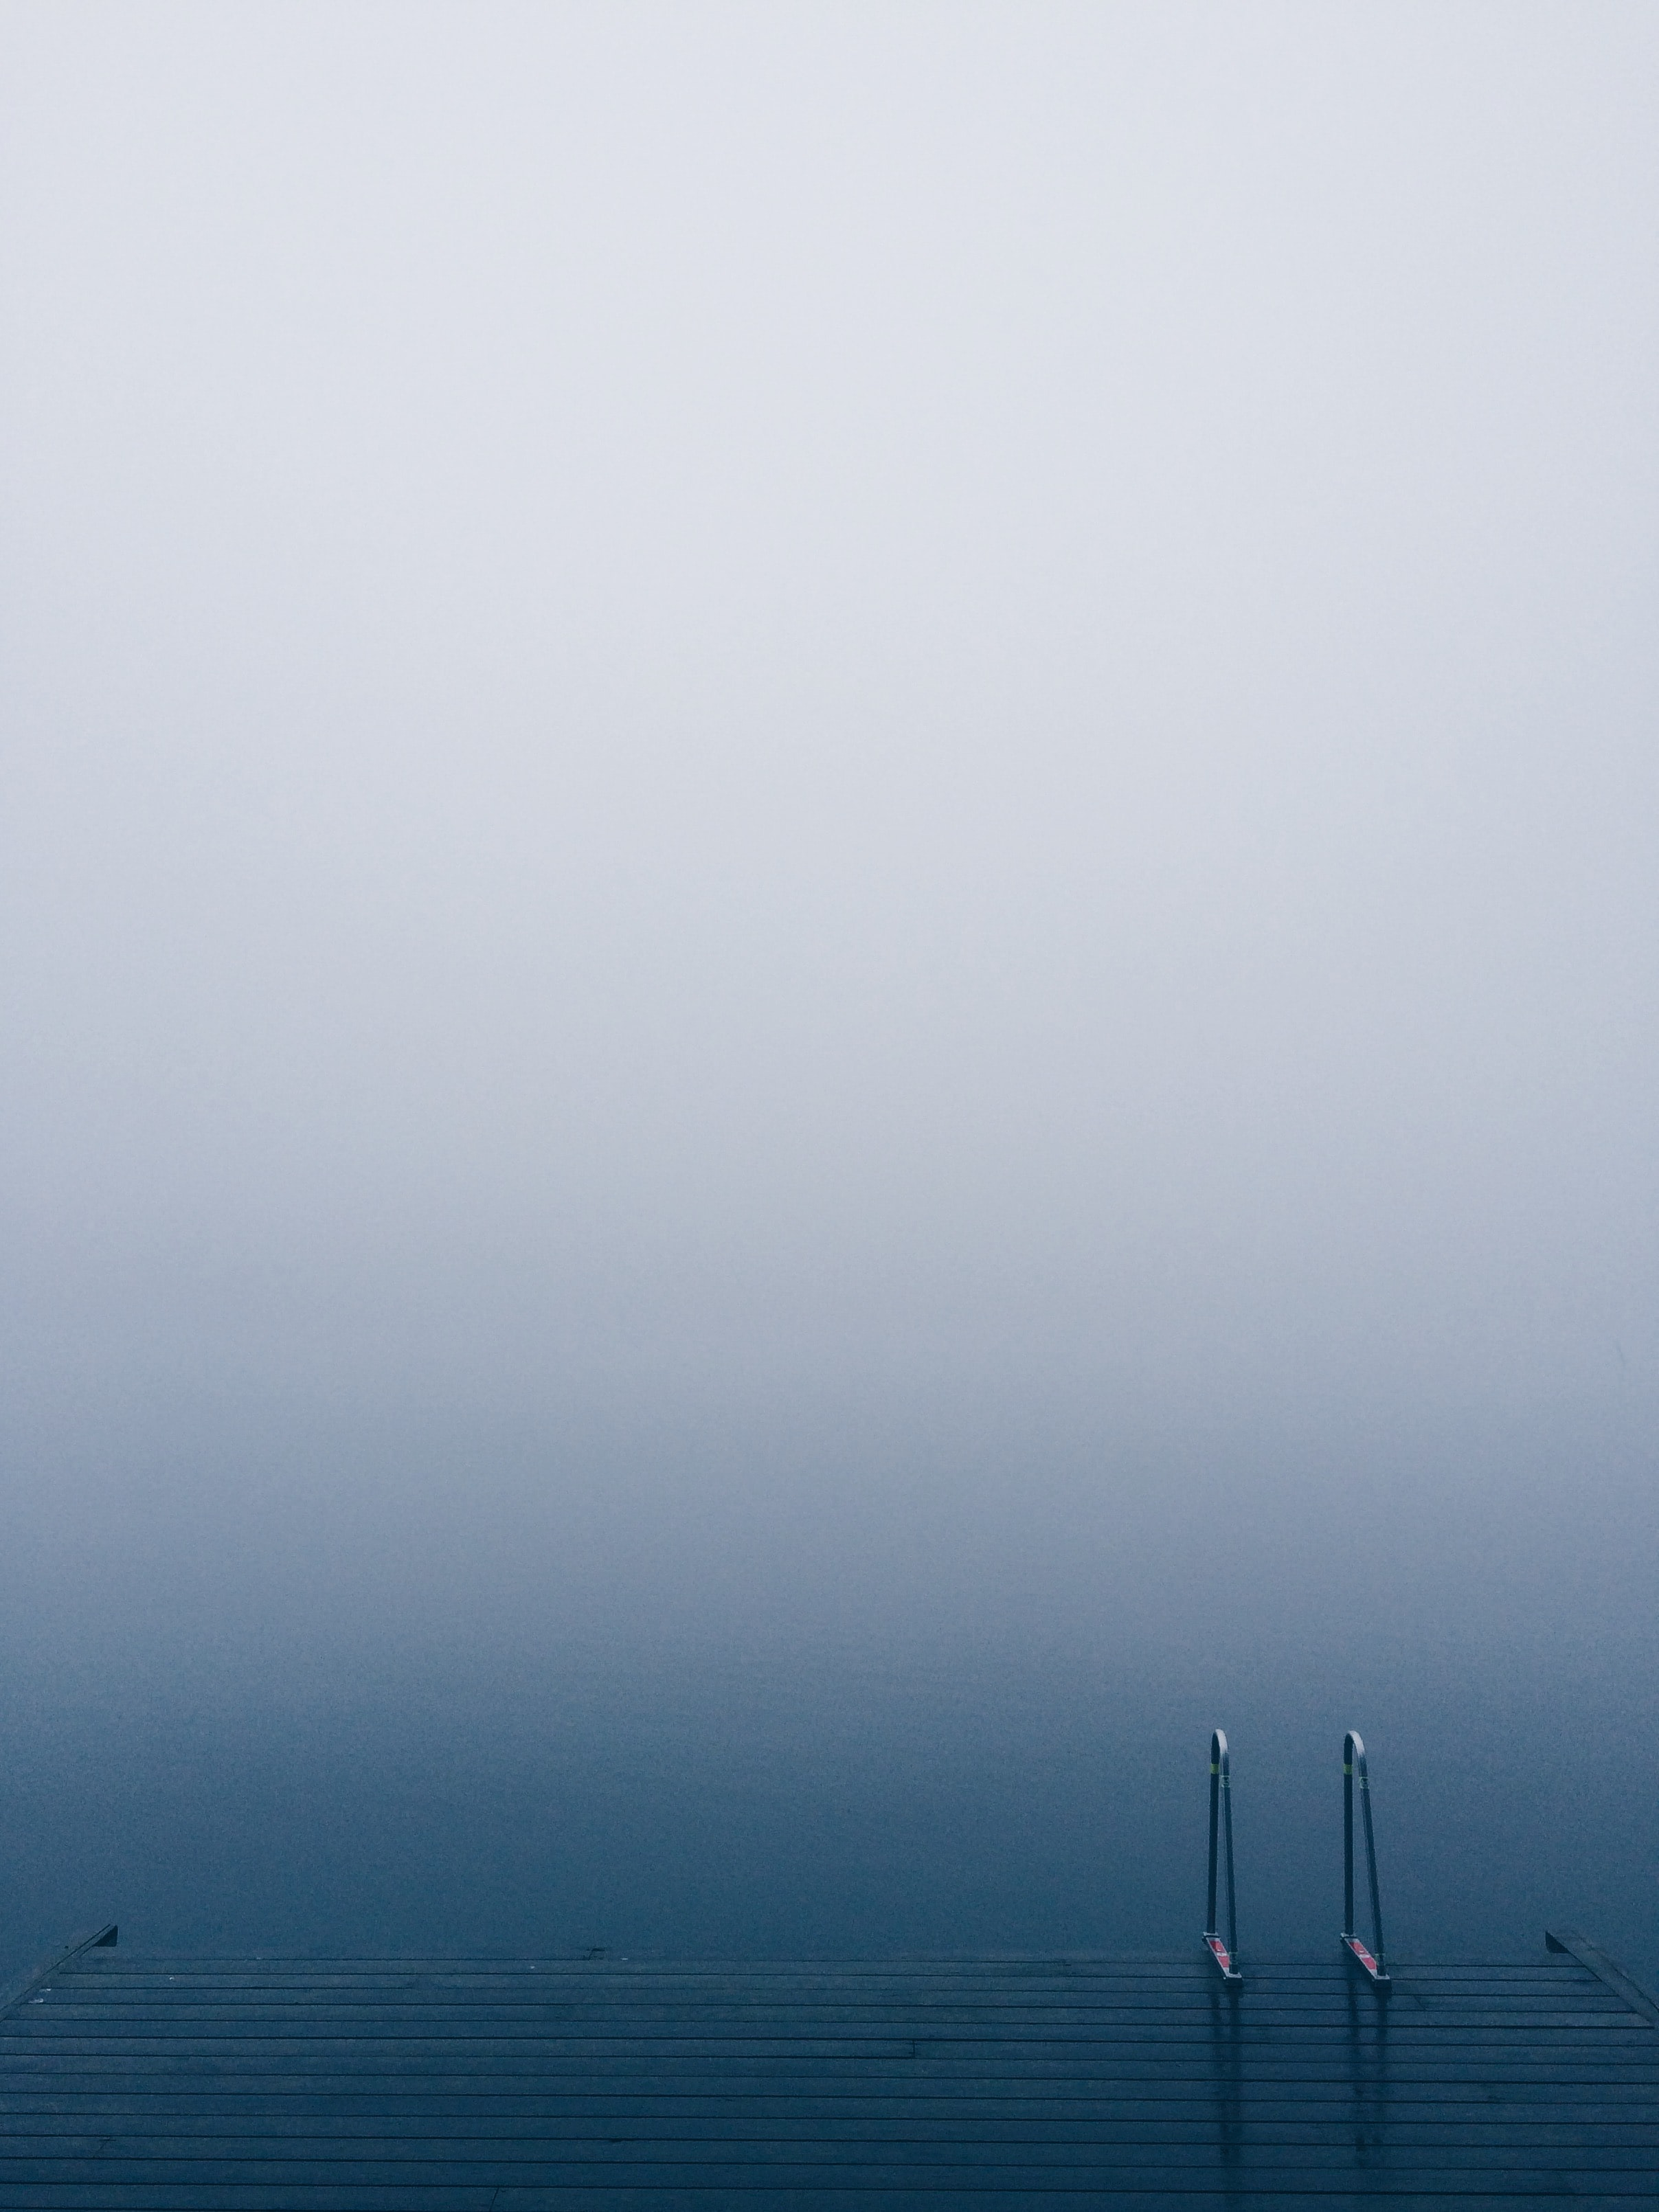 Lake pier with a ladder on serene waters on a foggy day